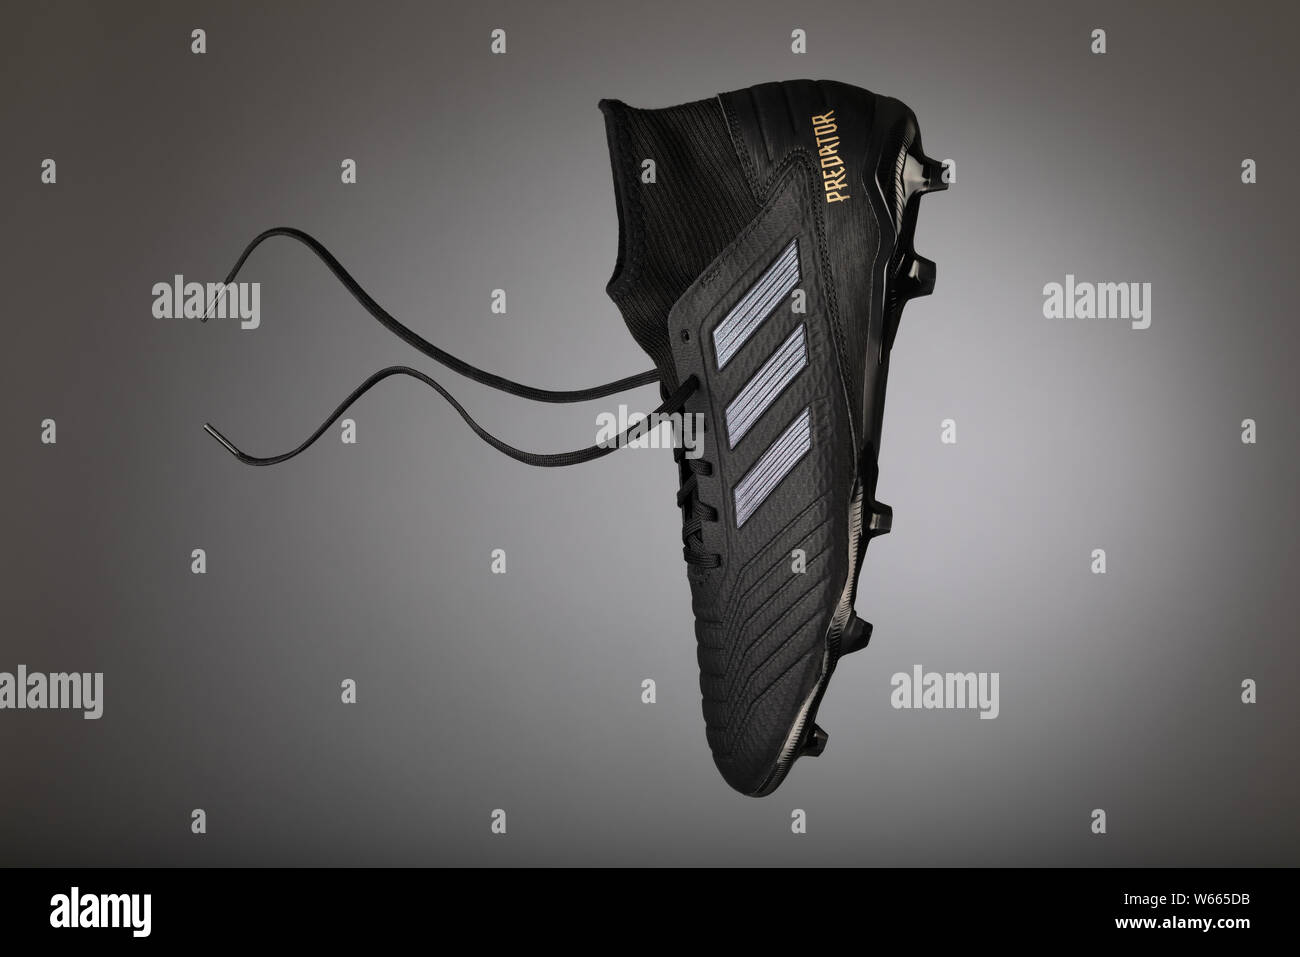 Adidas Stripes Stockfotos & Adidas Stripes Bilder Seite 2